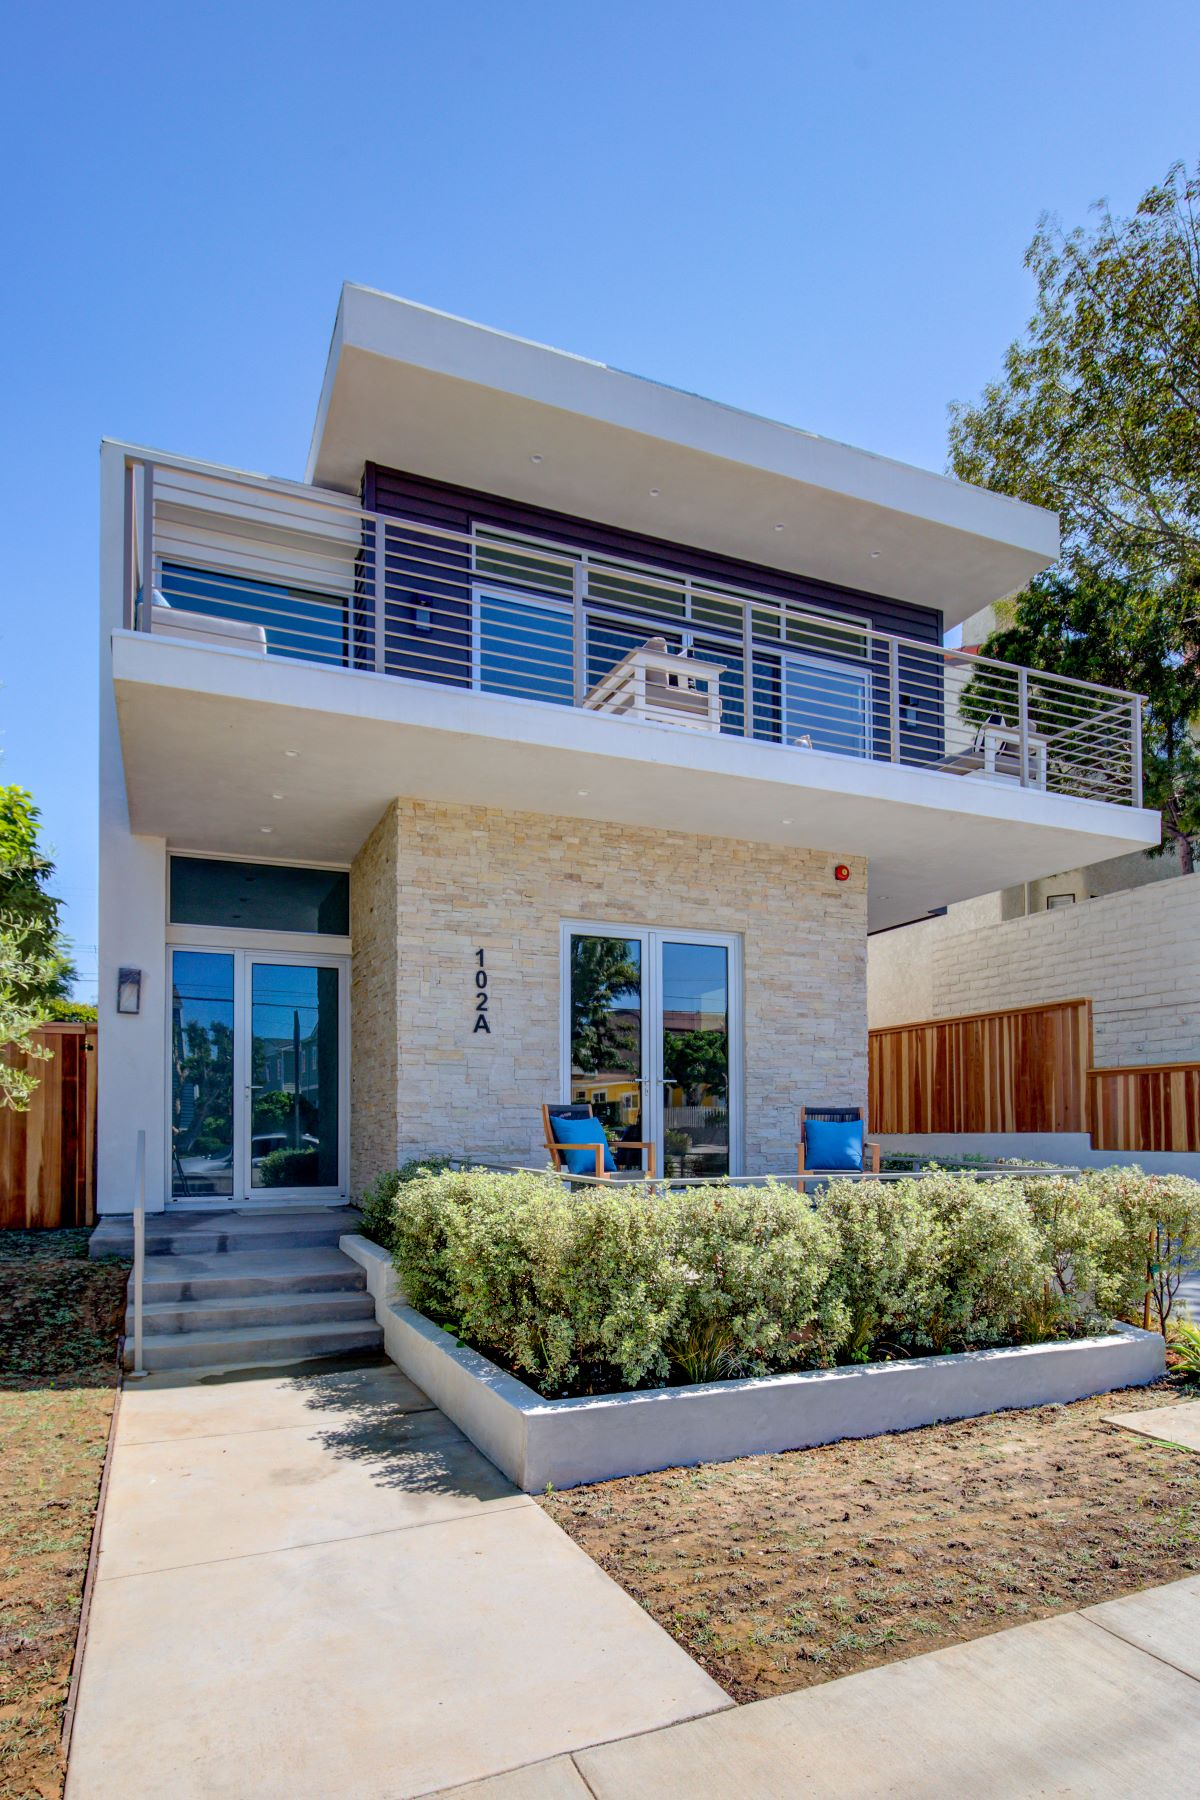 townhouses for Sale at 102 S Prospect Ave #A, Redondo Beach , CA 90277 102 S Prospect Ave #A Redondo Beach, California 90277 United States